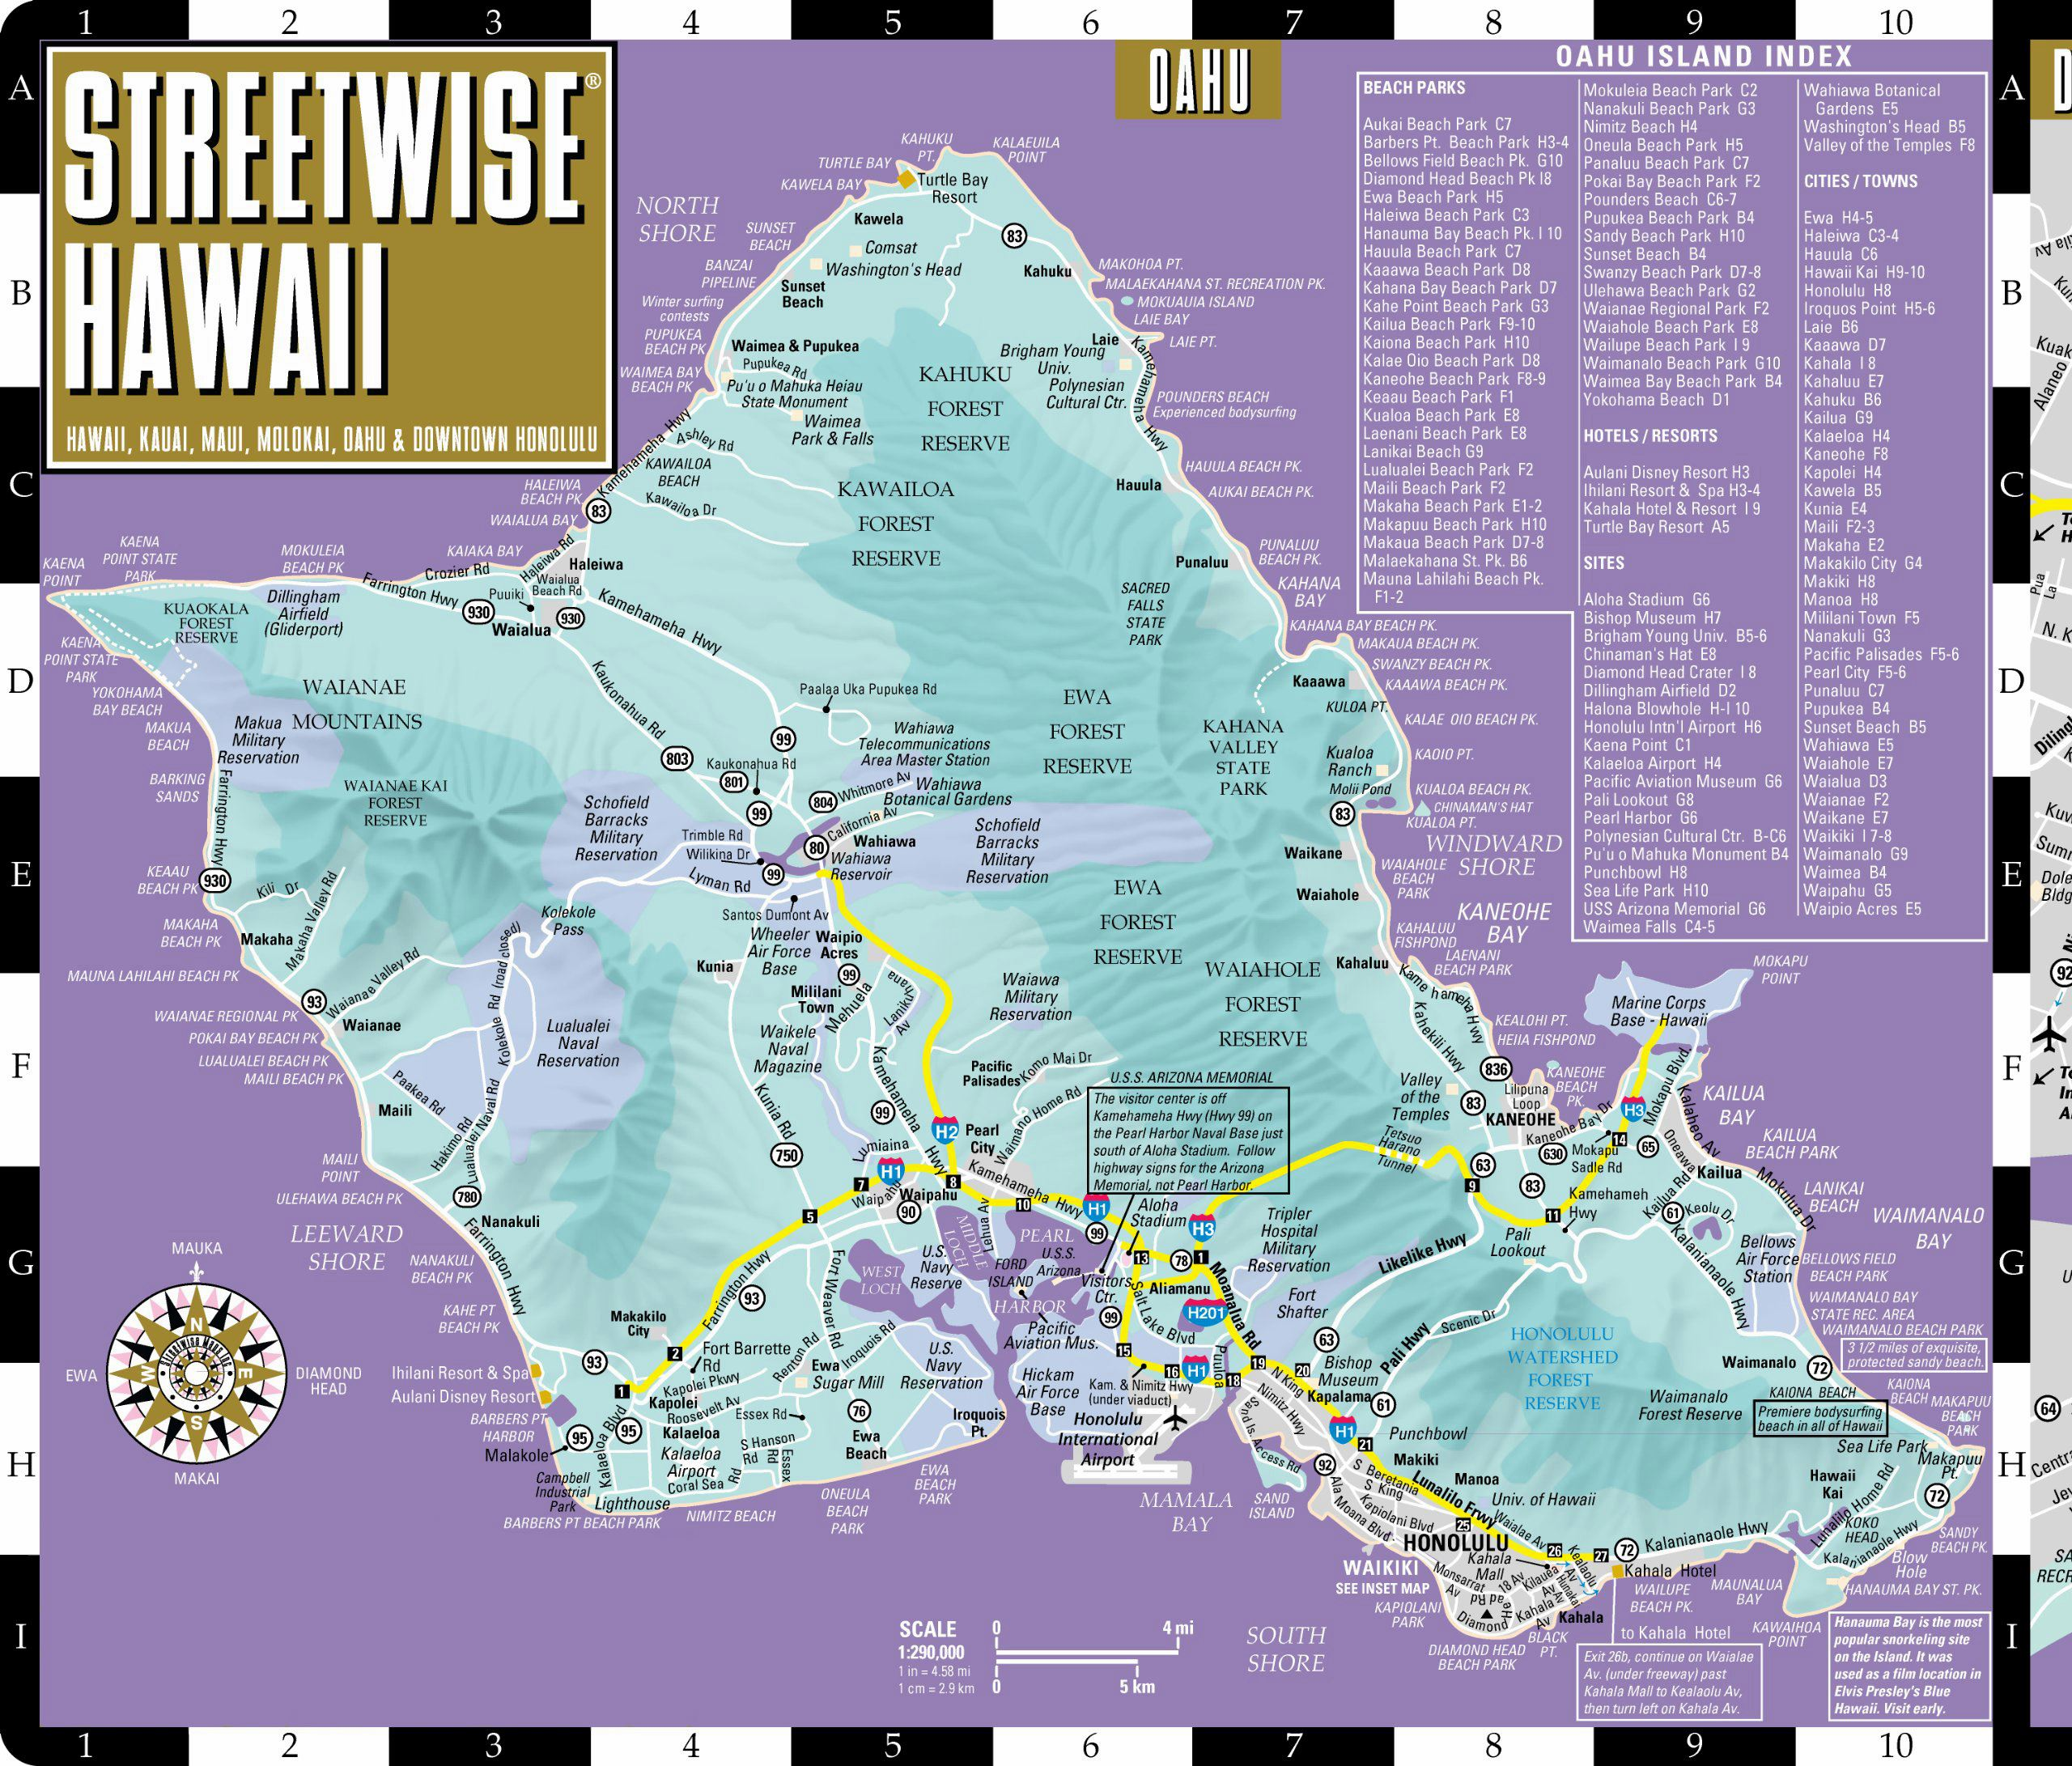 image about Oahu Map Printable titled Substantial Oahu Island Maps for Totally free Down load and Print Substantial